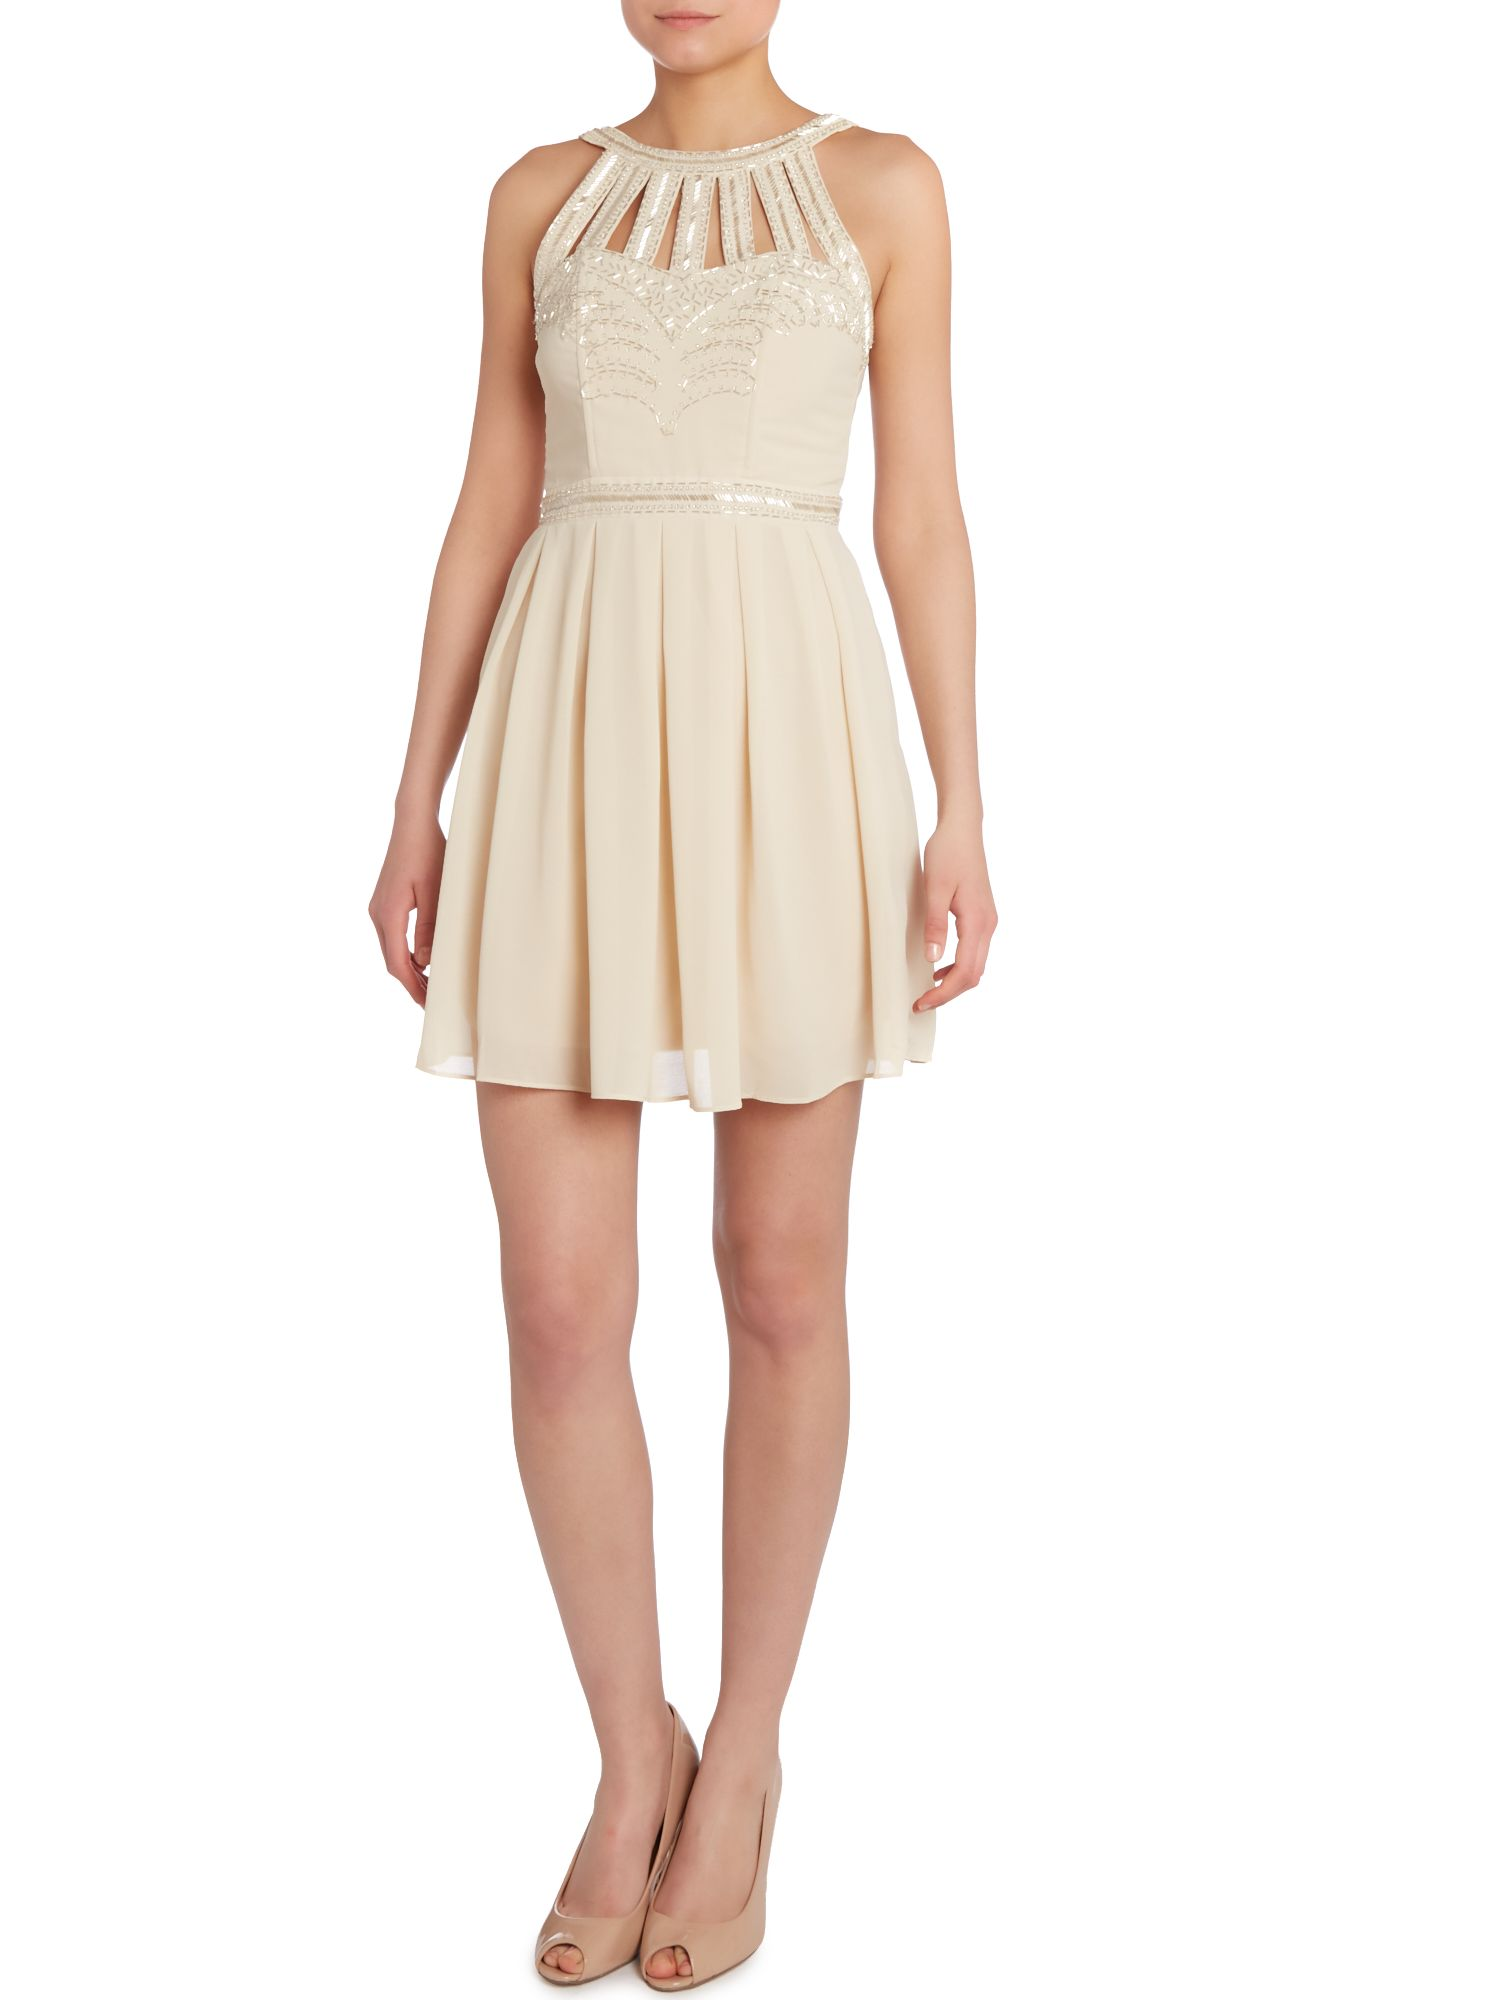 Cage embellished neck fot and flare dress